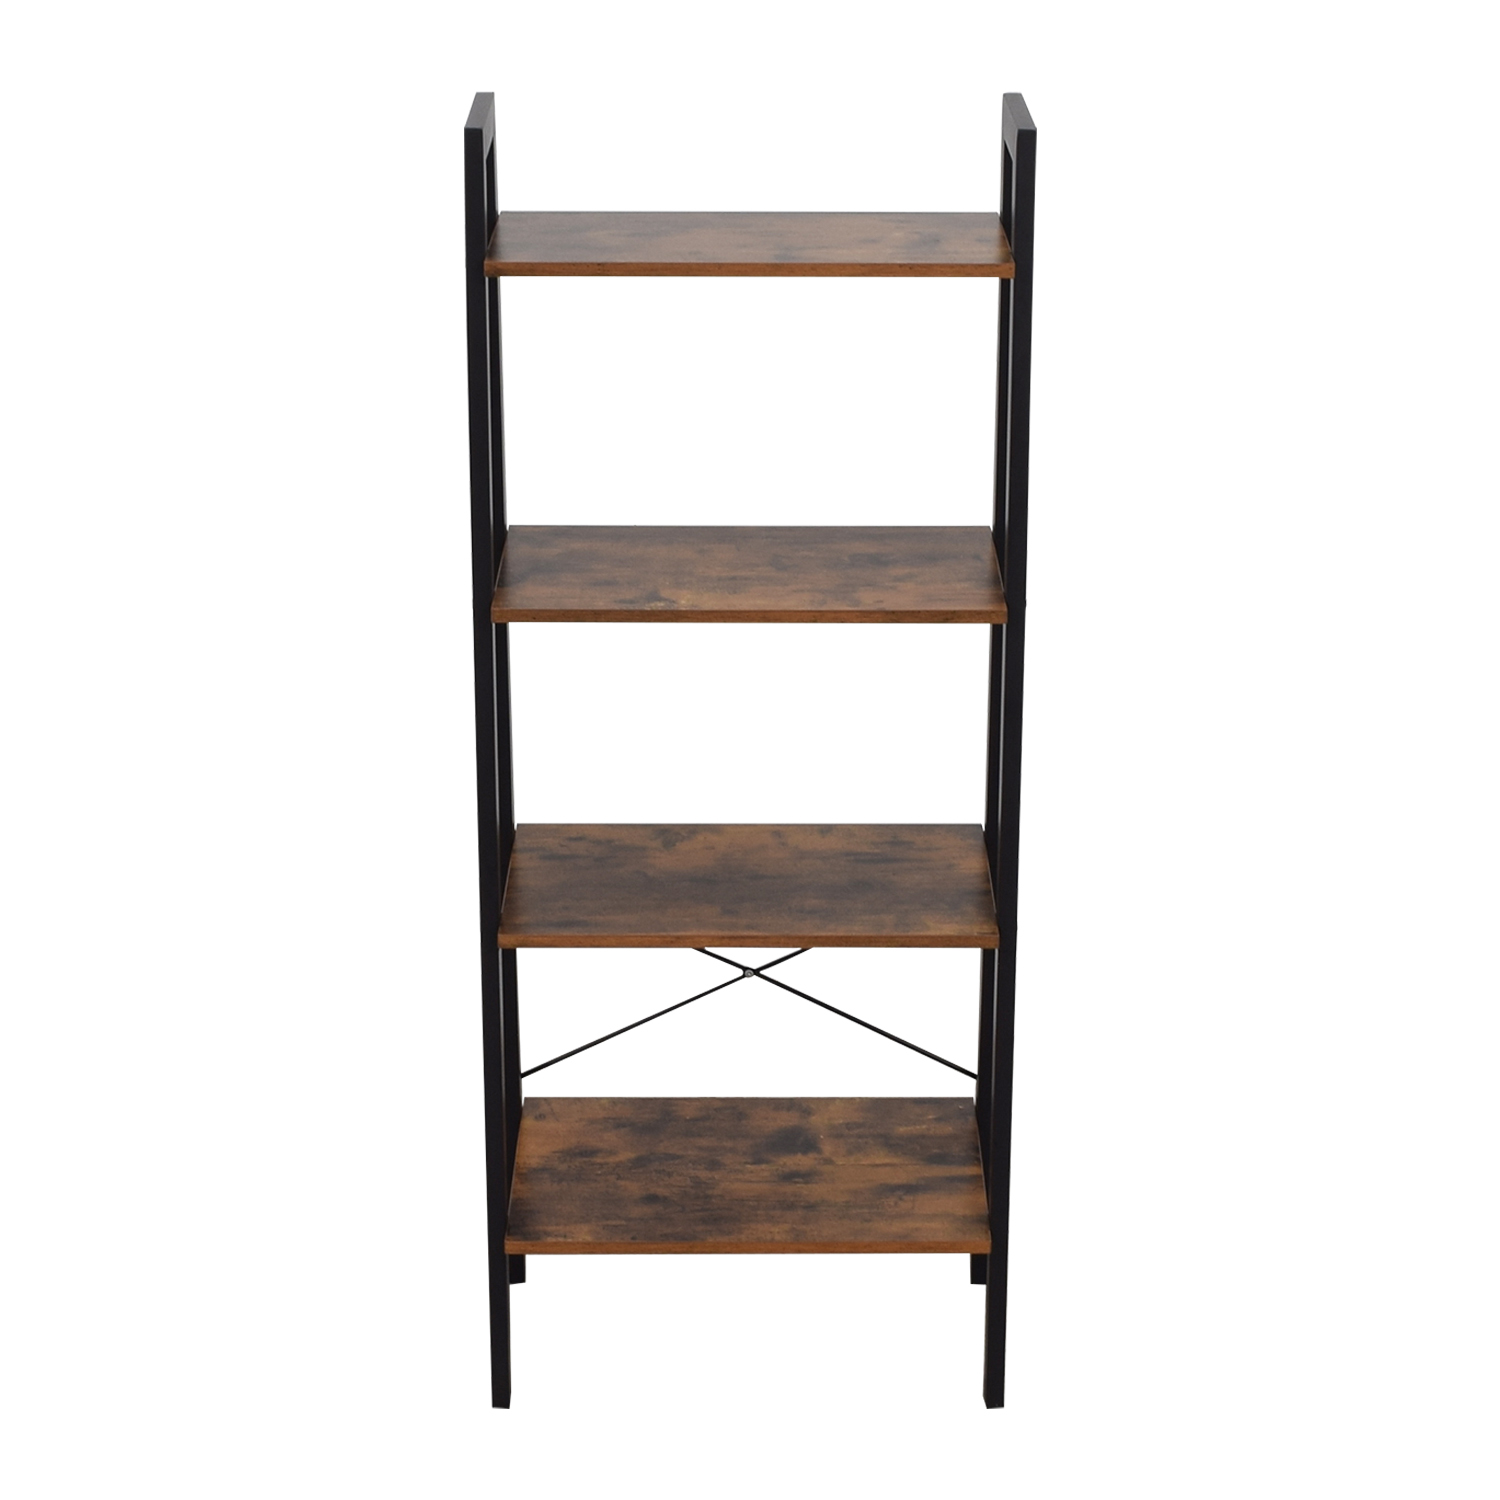 buy Ameziel Vintage Ladder Shelf Ameziel, Inc.